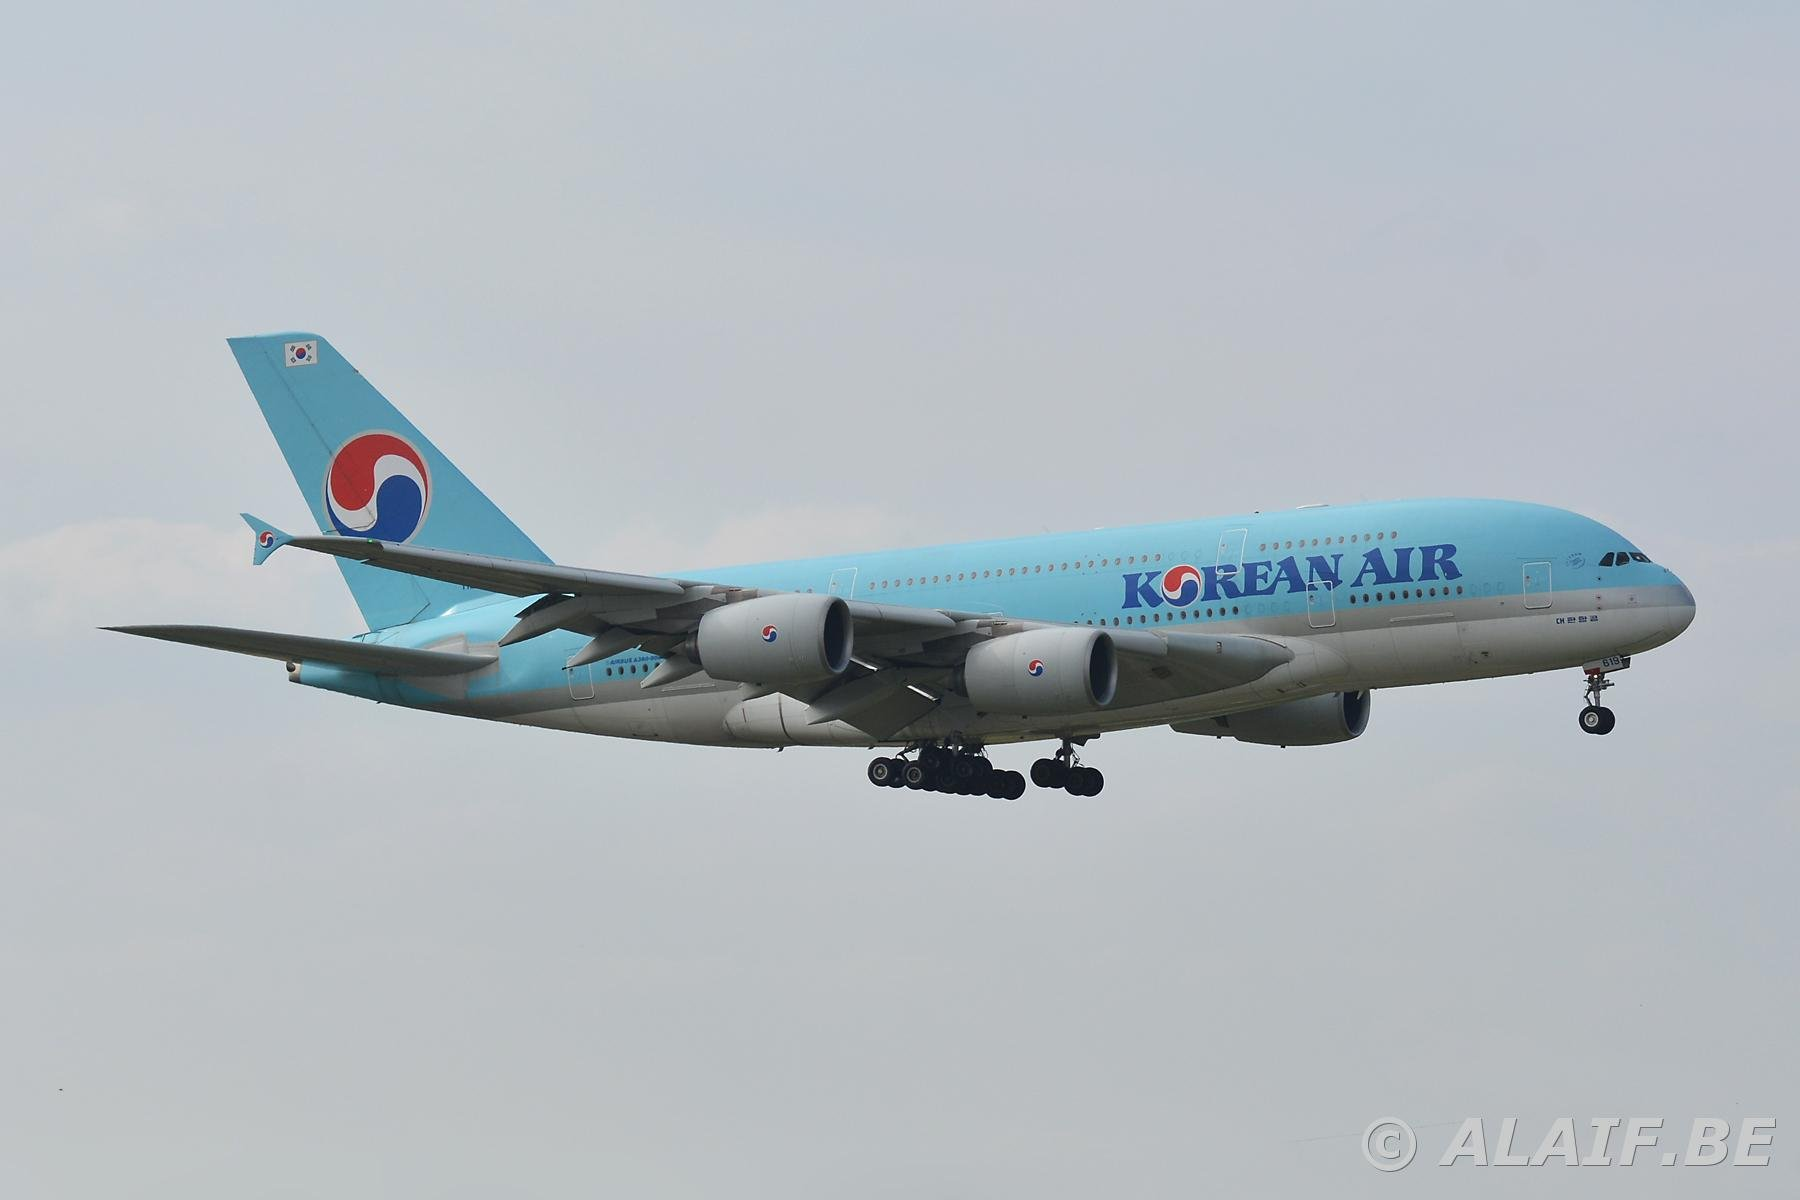 KOREAN AIR_A380-861_HL7619_EGLL_09L_20180610_003